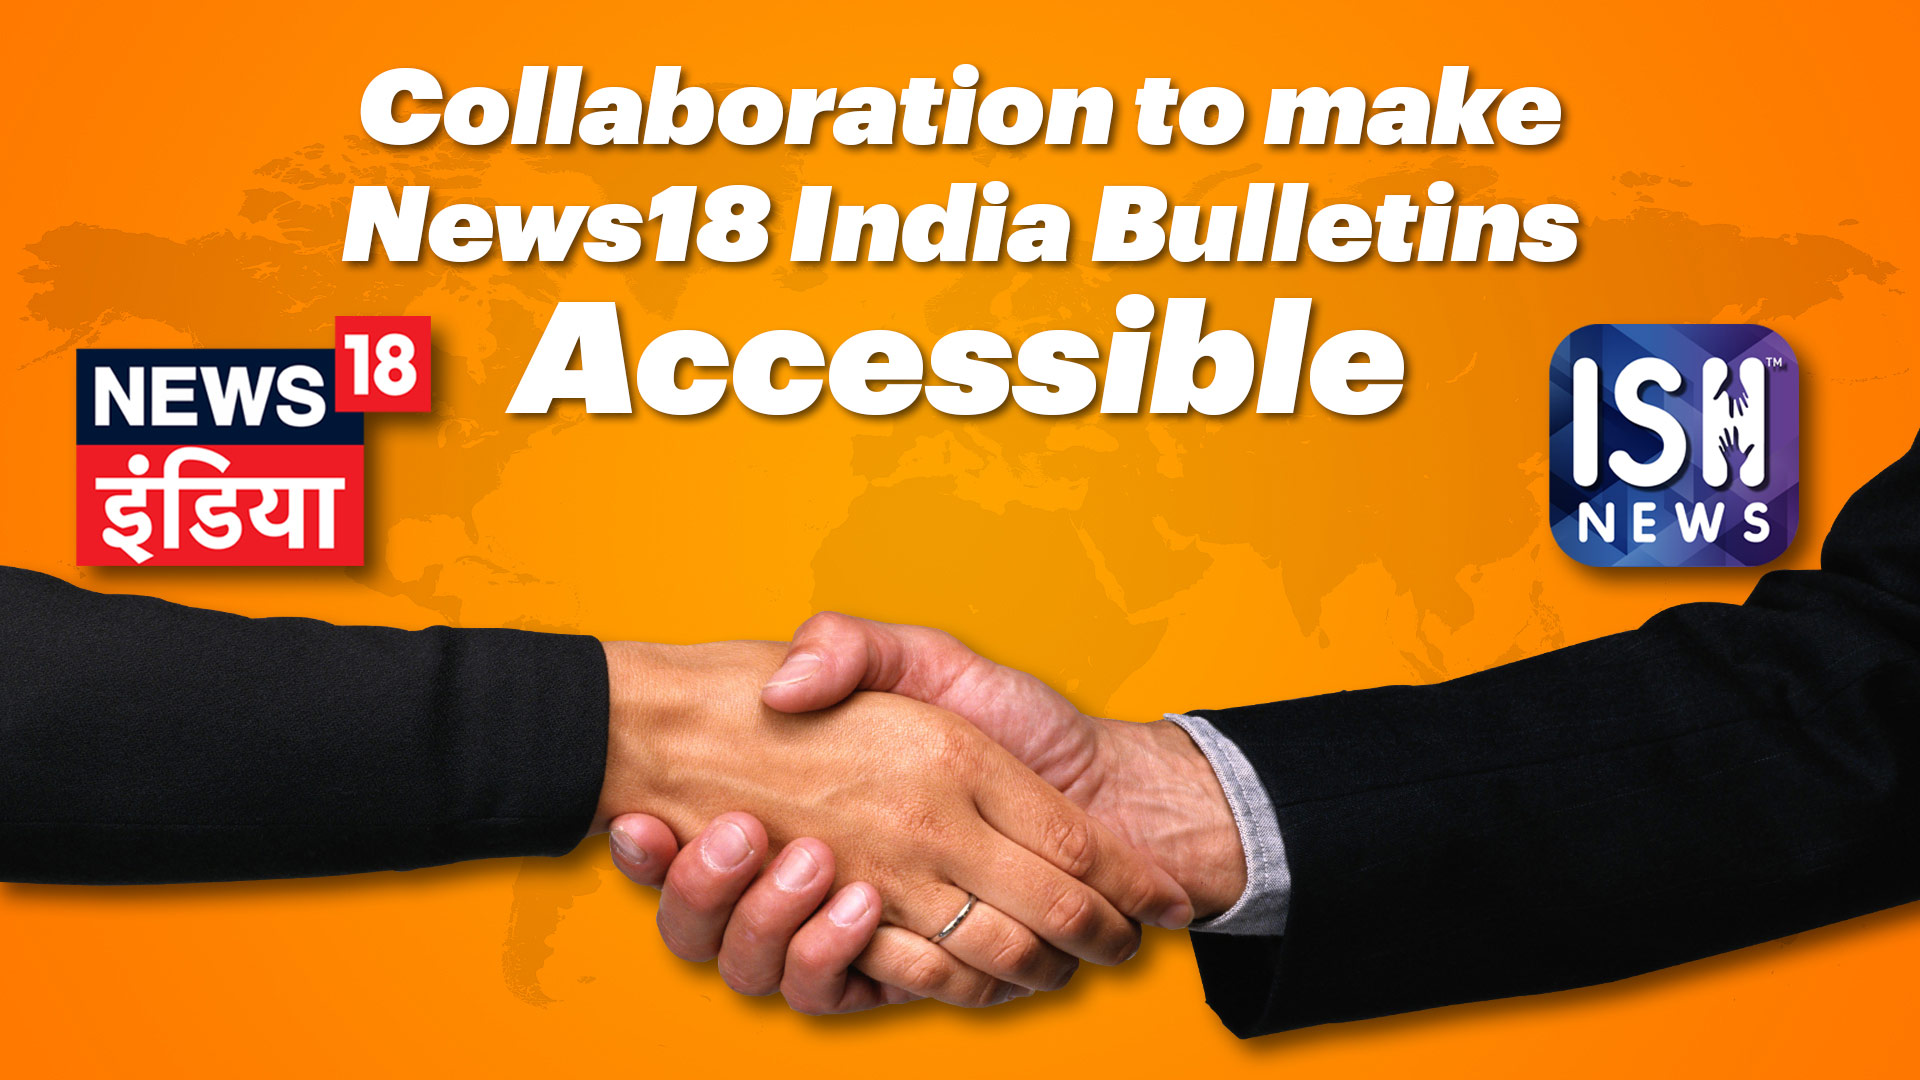 Making News18 India Accessible